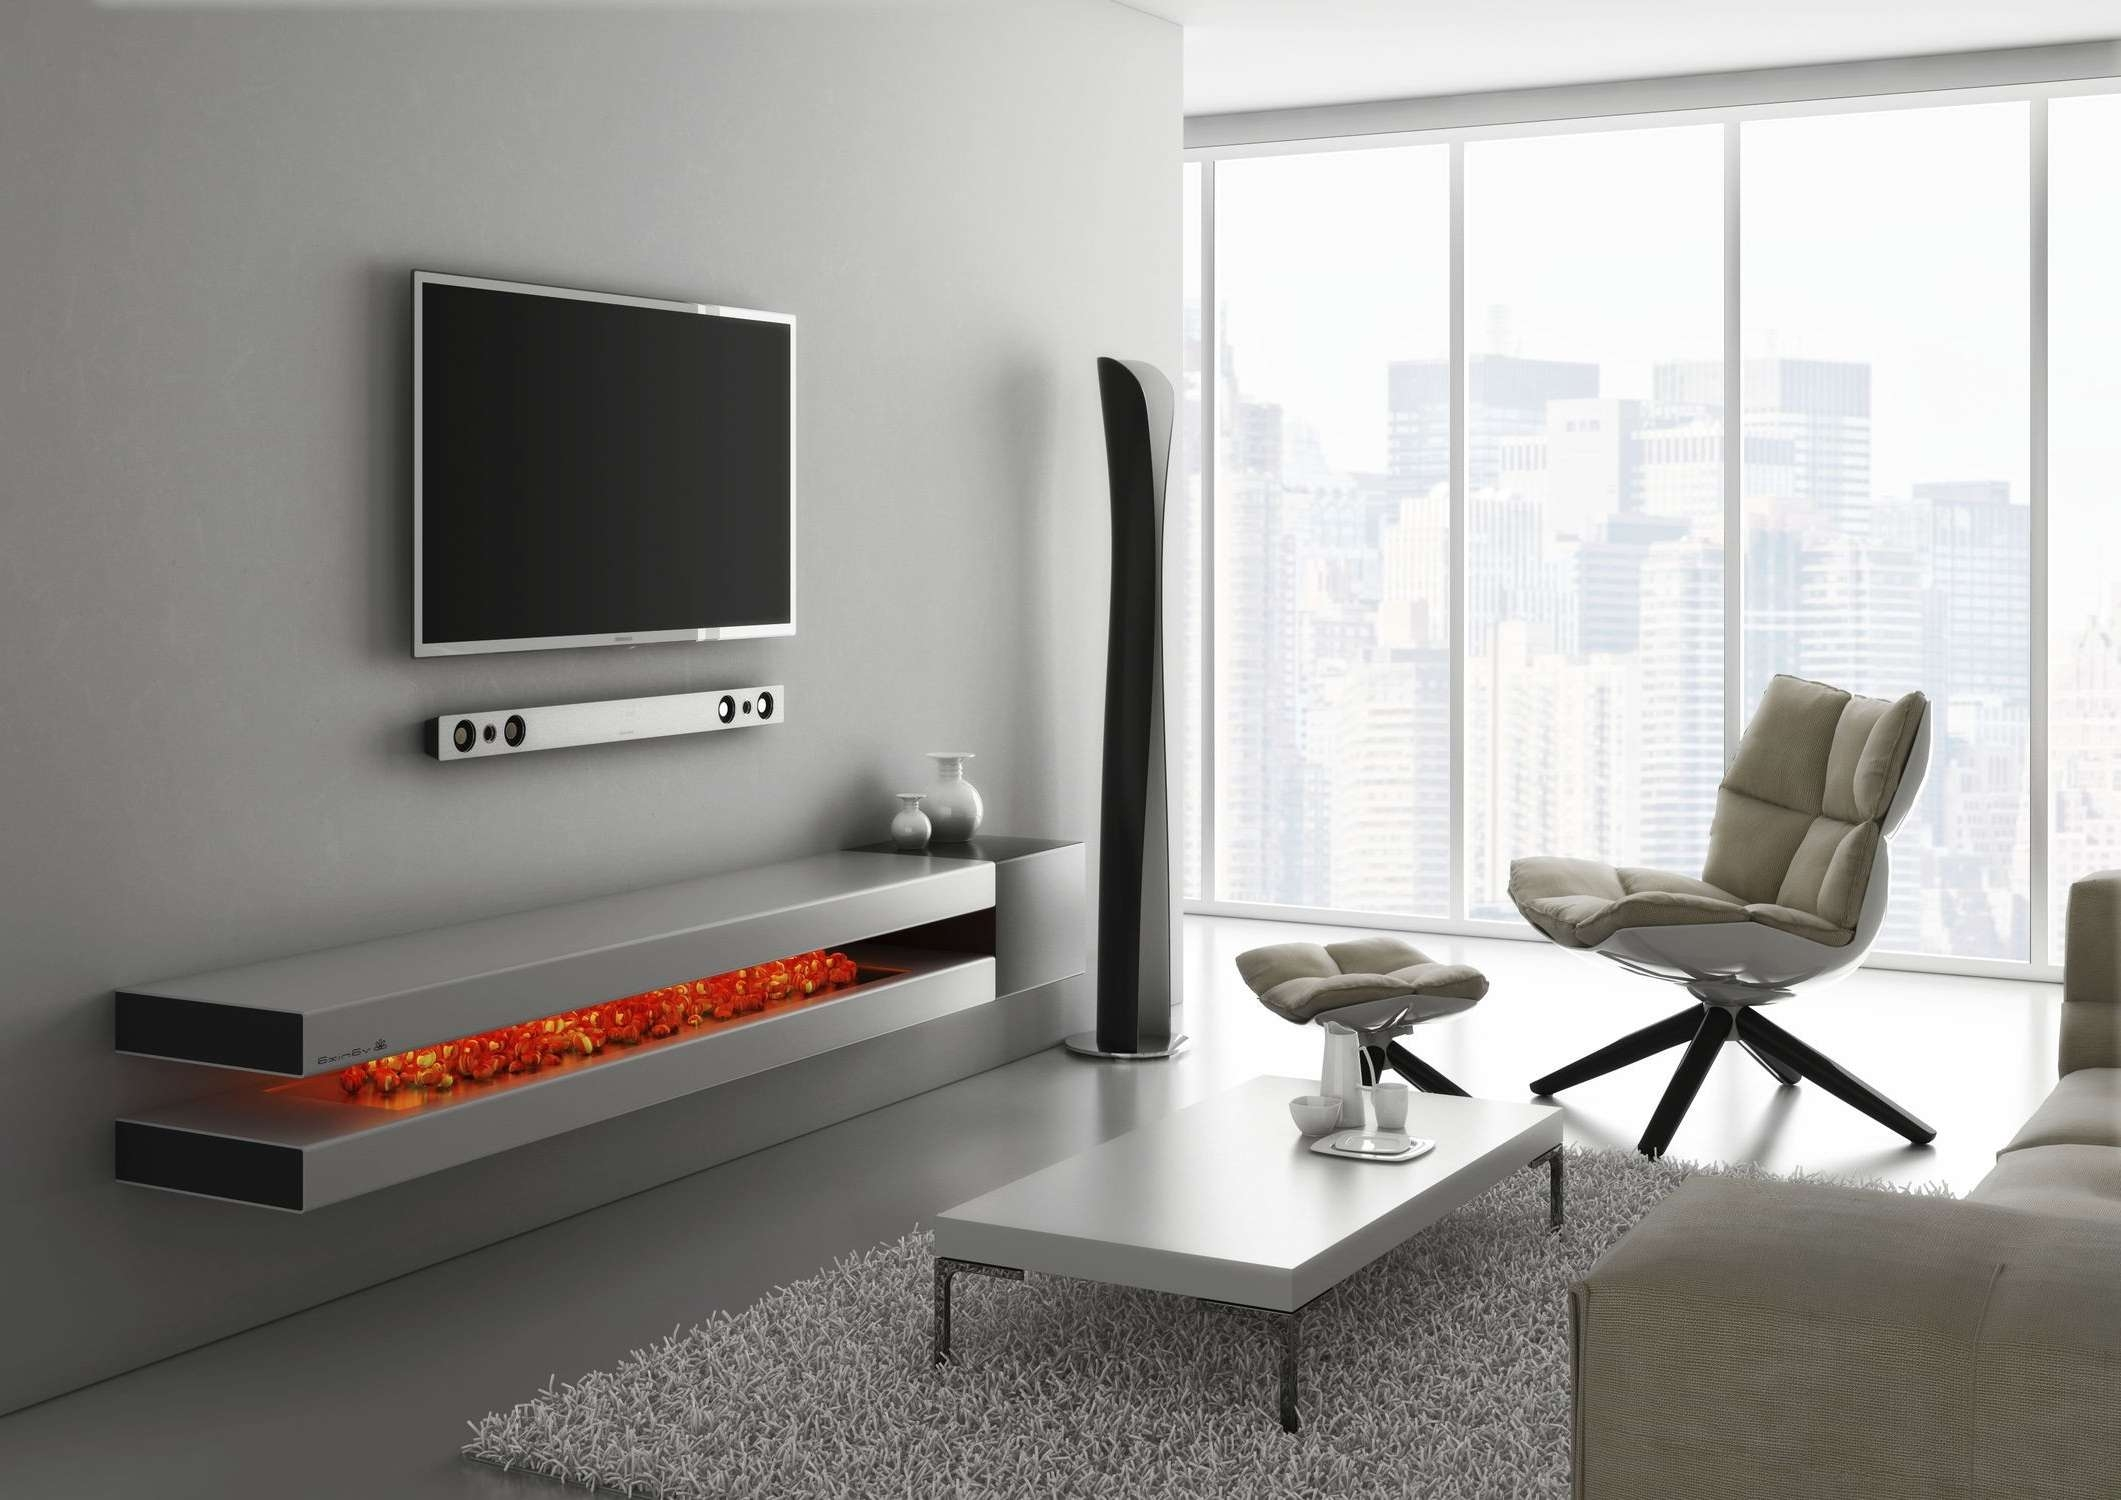 Contemporary White Floating Tv Stands With Media Shelving Attached Inside Under Tv Cabinets (View 5 of 20)